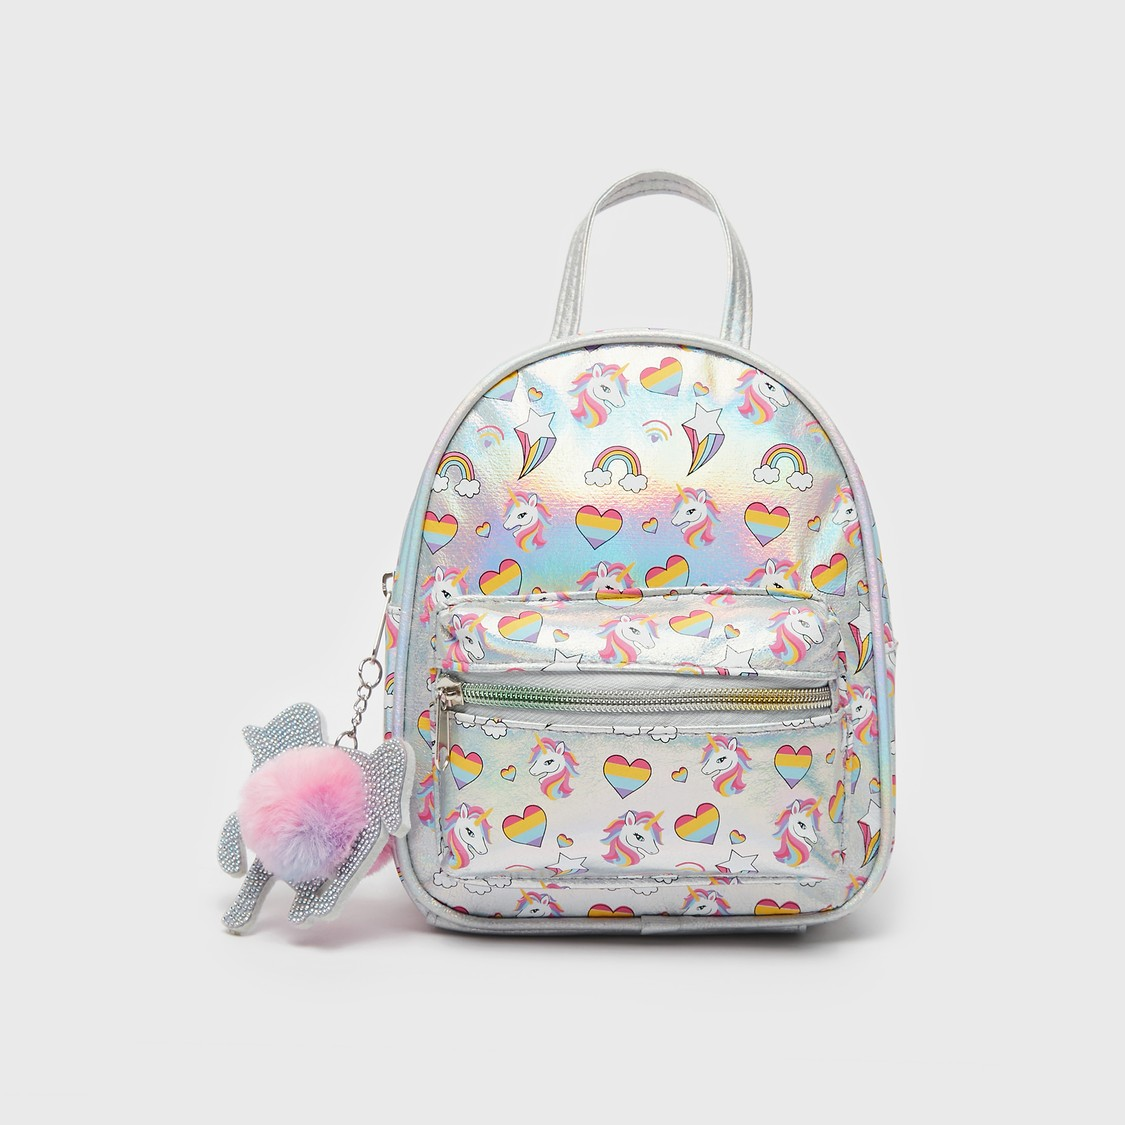 Printed Backpack with Unicorn Charm